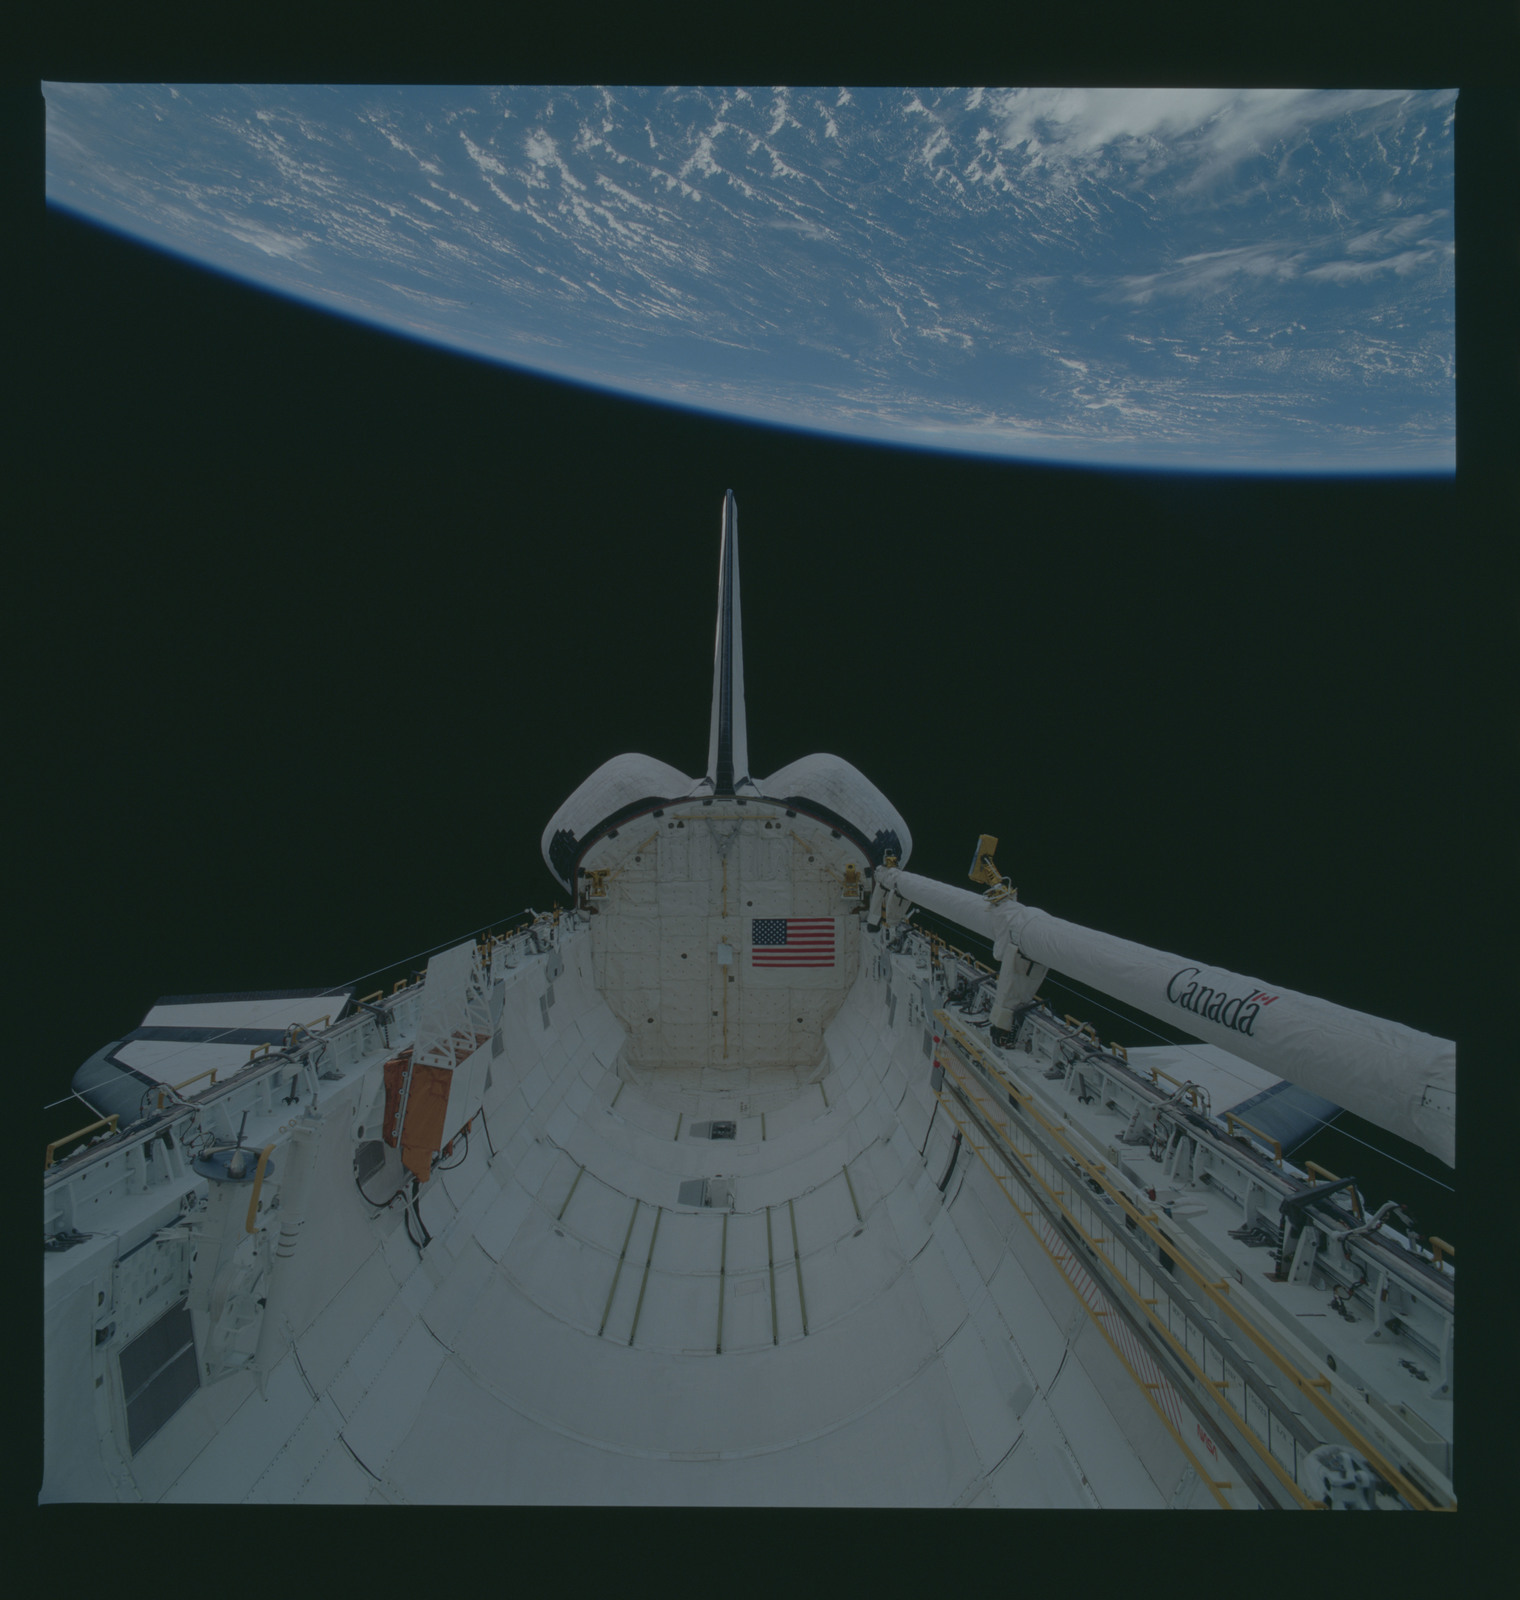 S37-96-043 - STS-037 - Views of the aft payload bay of OV-104 taken during the STS-37 mission